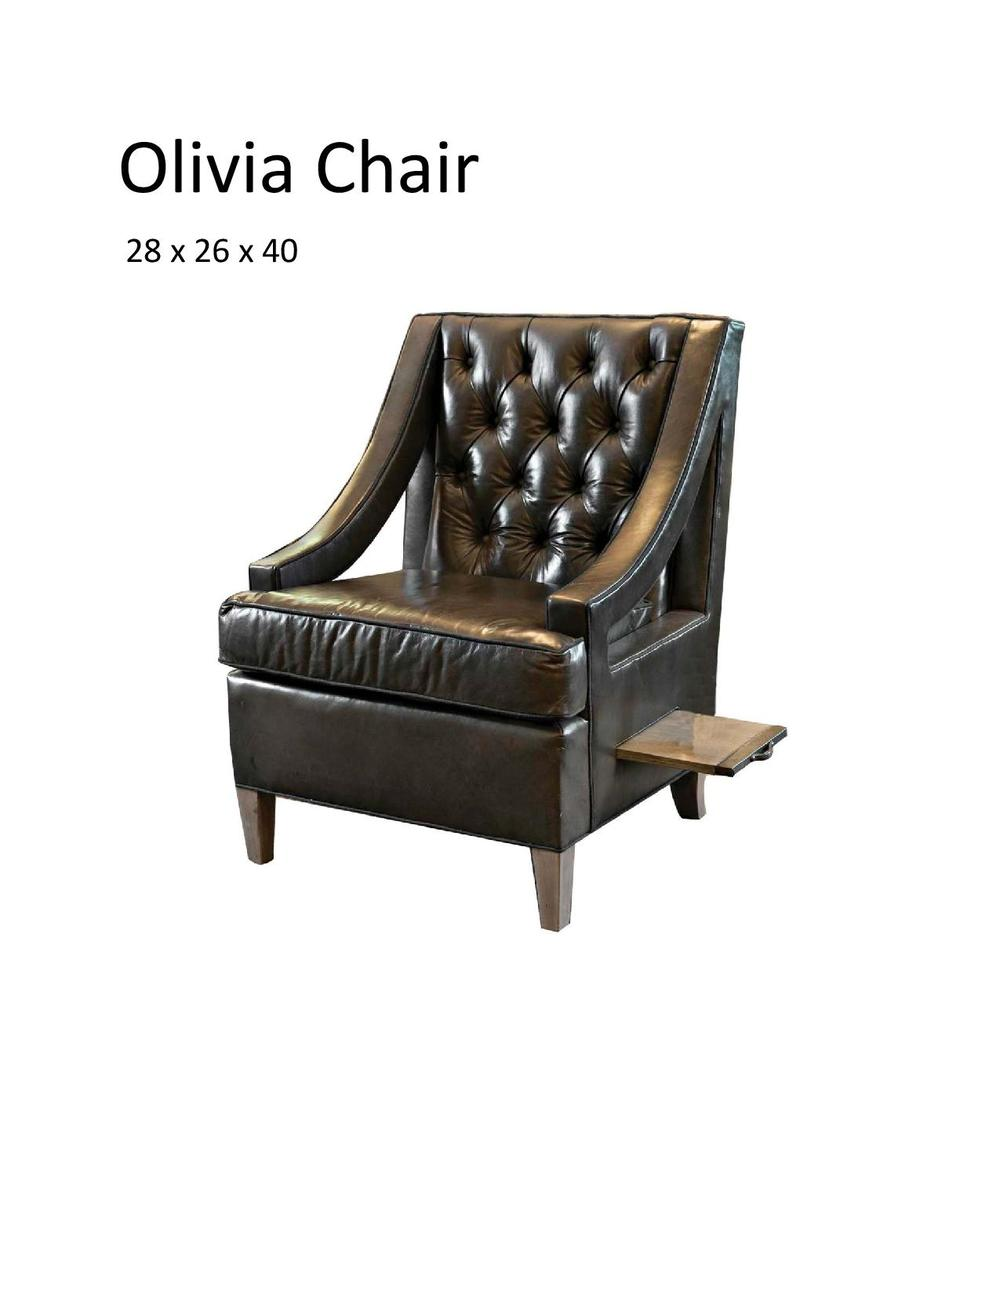 oliva chair-page-001.jpg